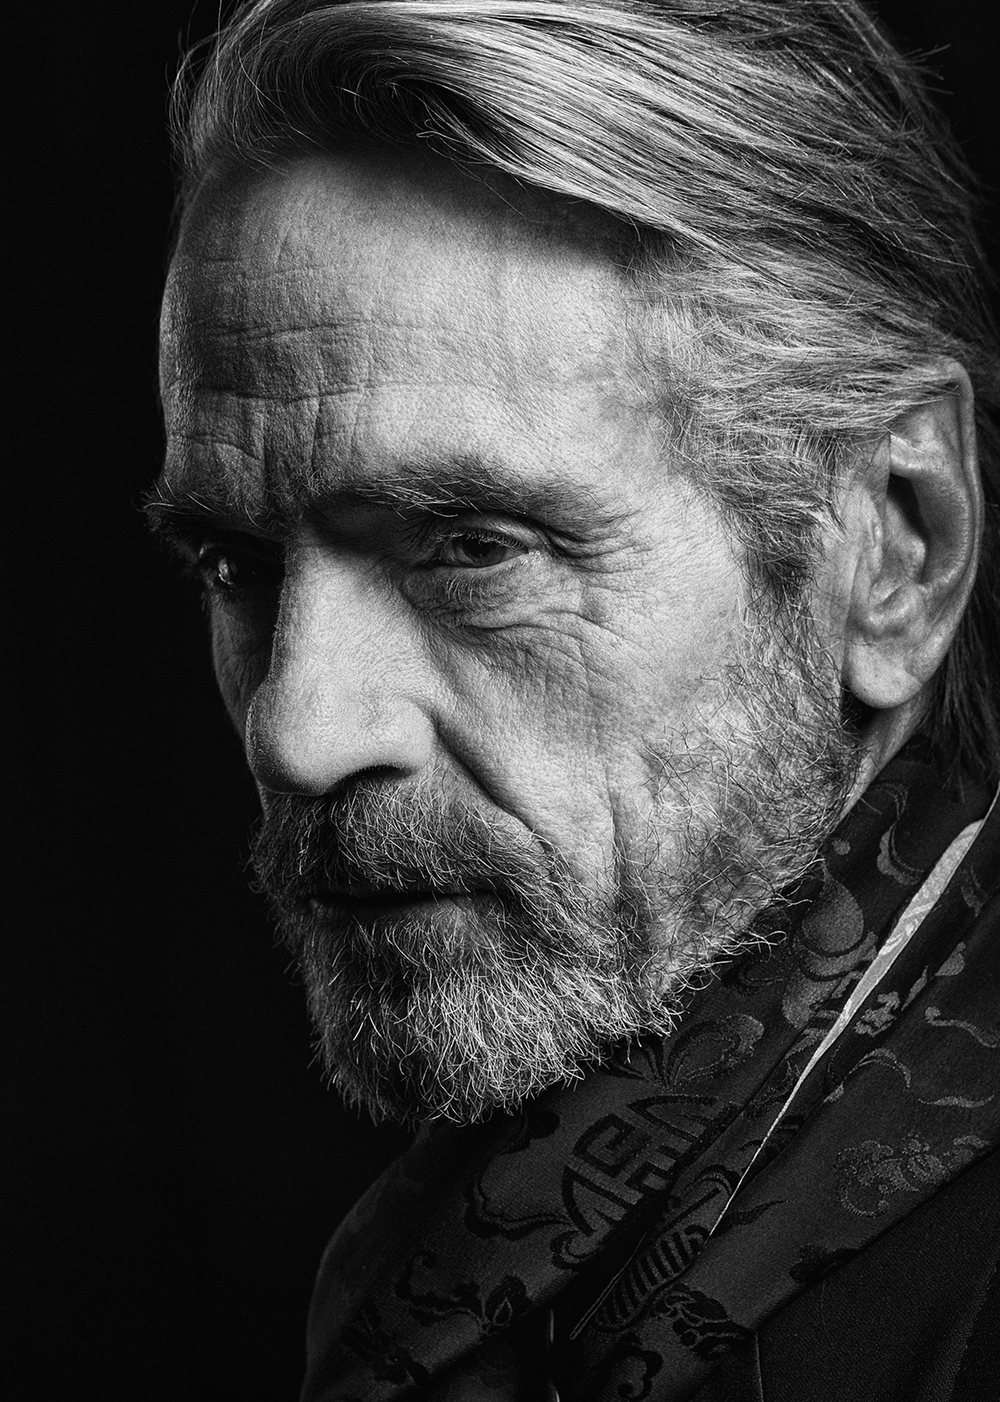 Jeremy Irons – Actor